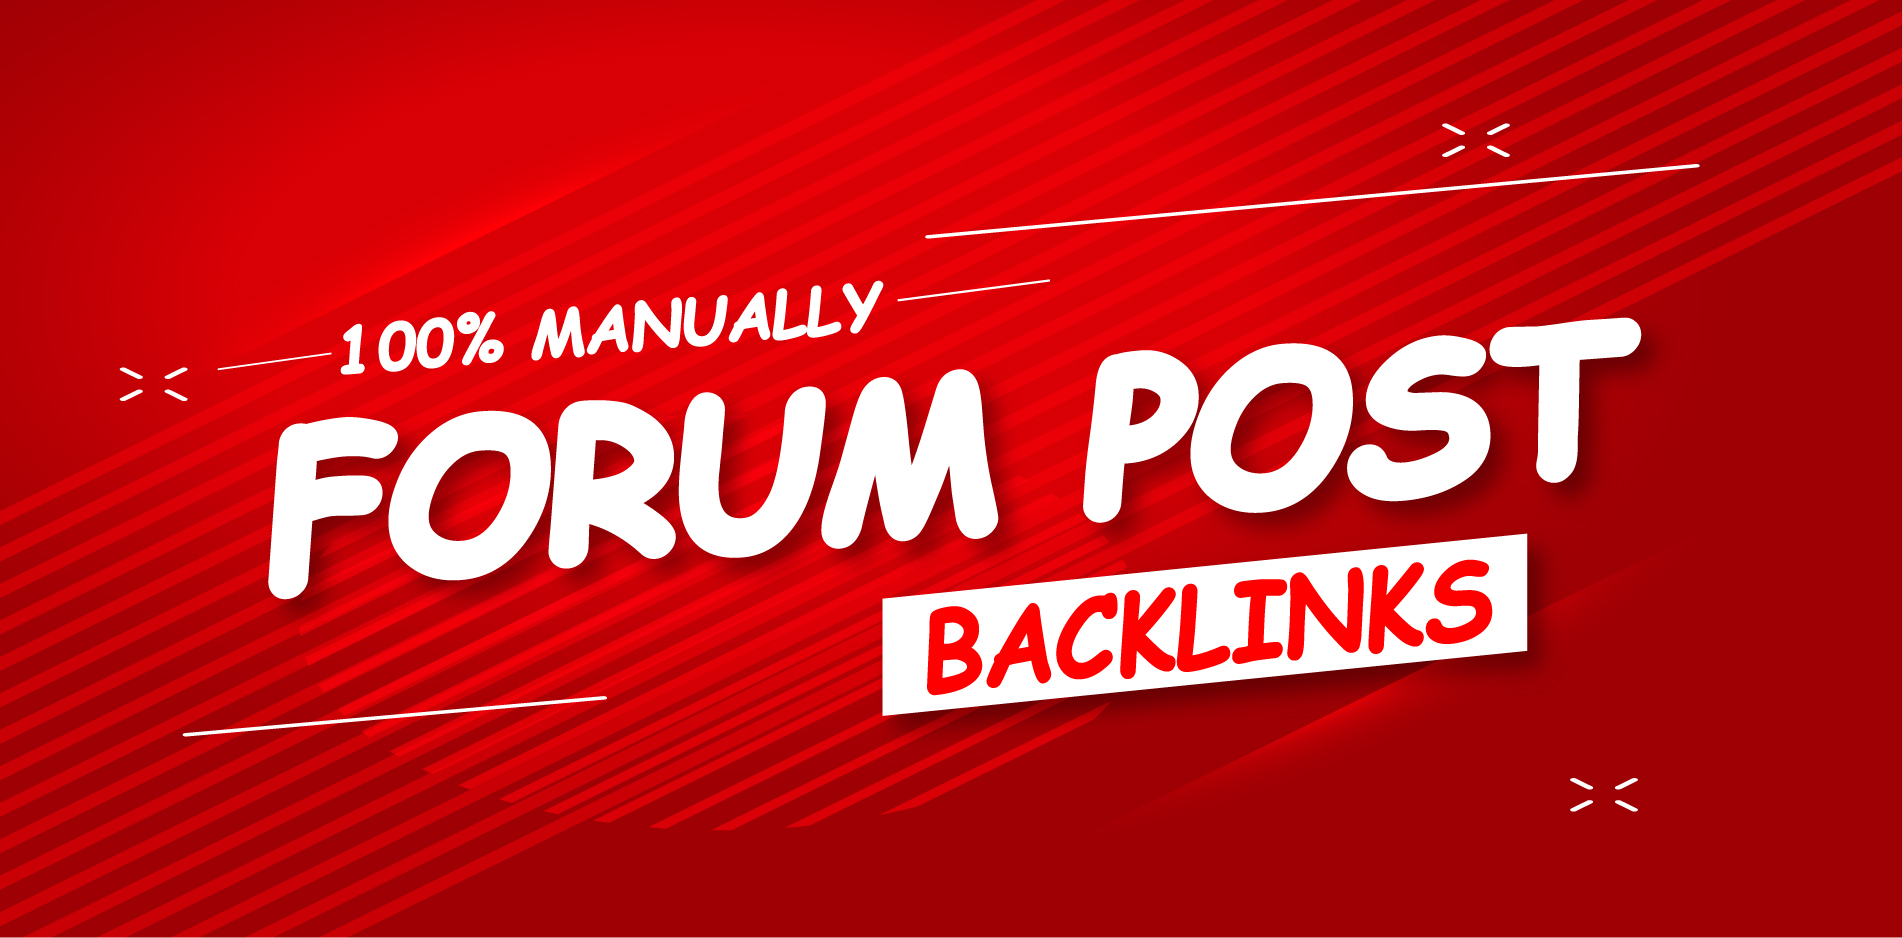 30 low obl forum posting backlinks to boost your website ranking